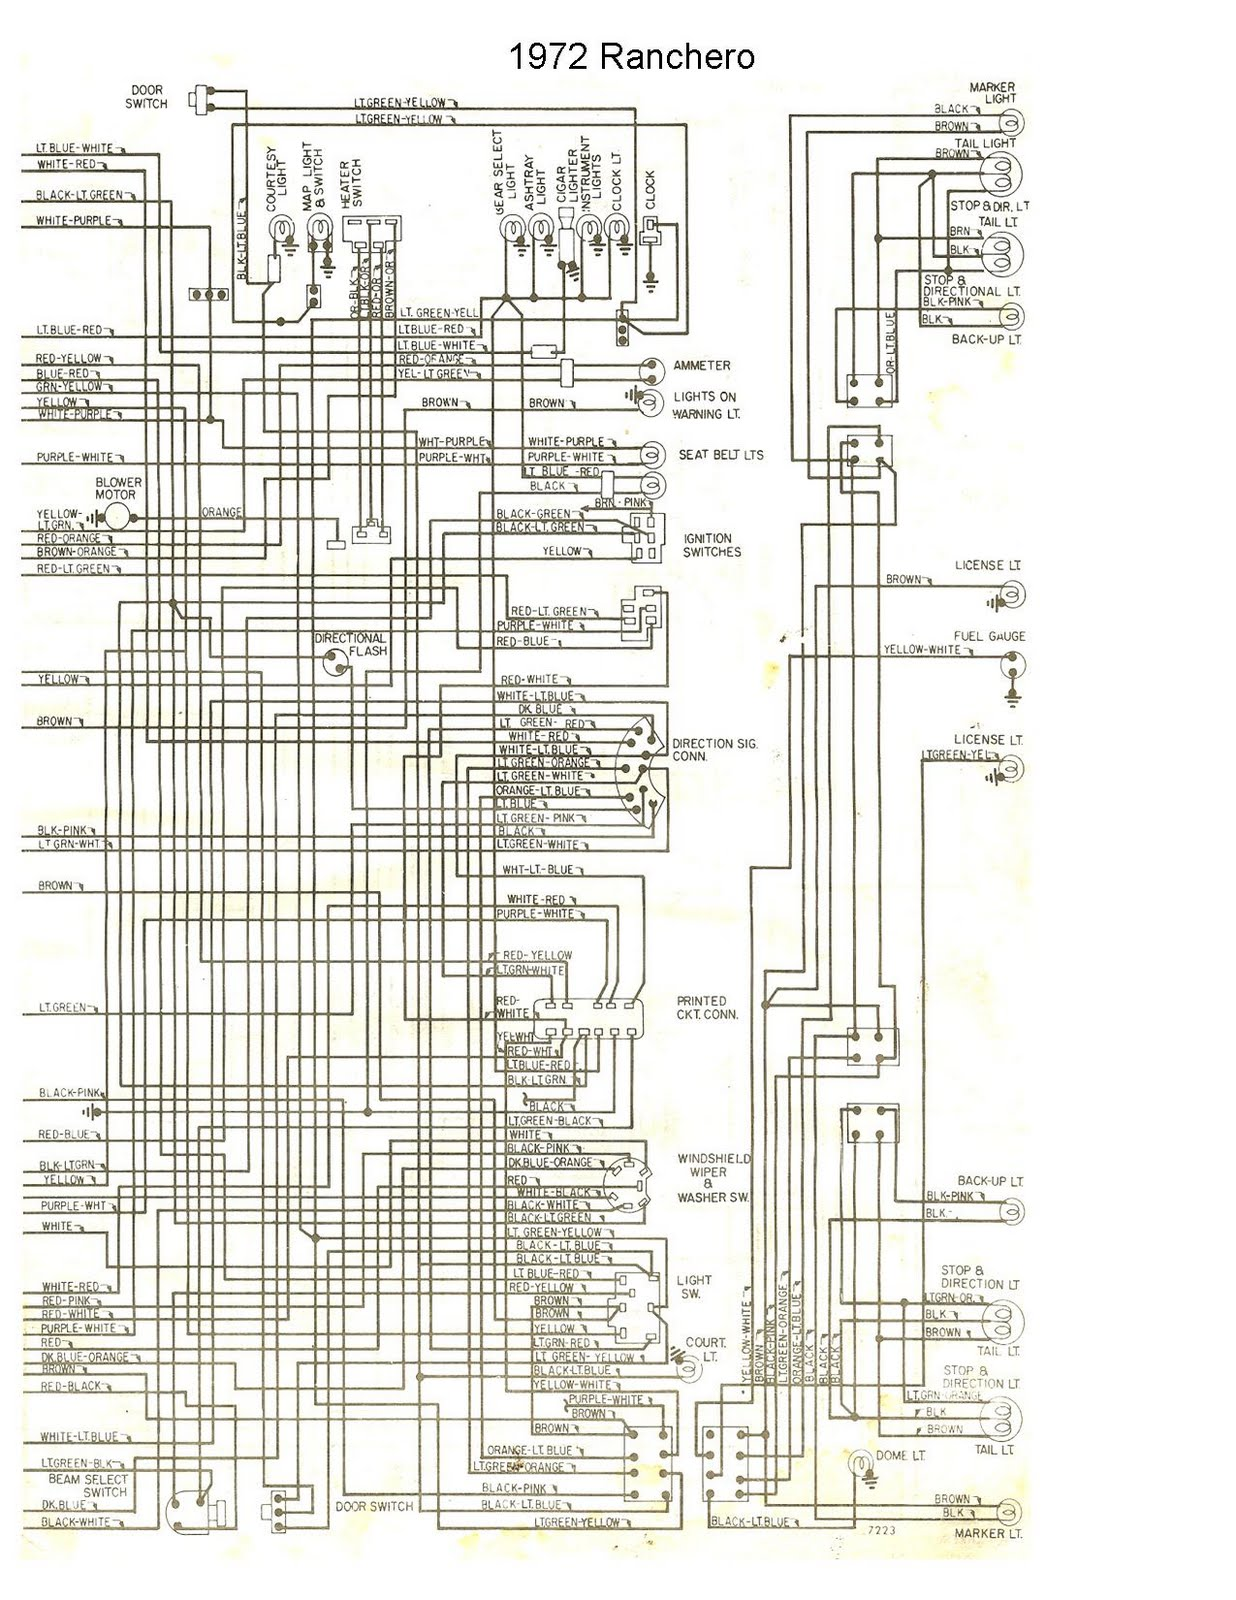 diagram] 1962 ford ranchero wiring diagram full version hd quality wiring  diagram - voipdiagram.vinciconmareblu.it  voipdiagram.vinciconmareblu.it